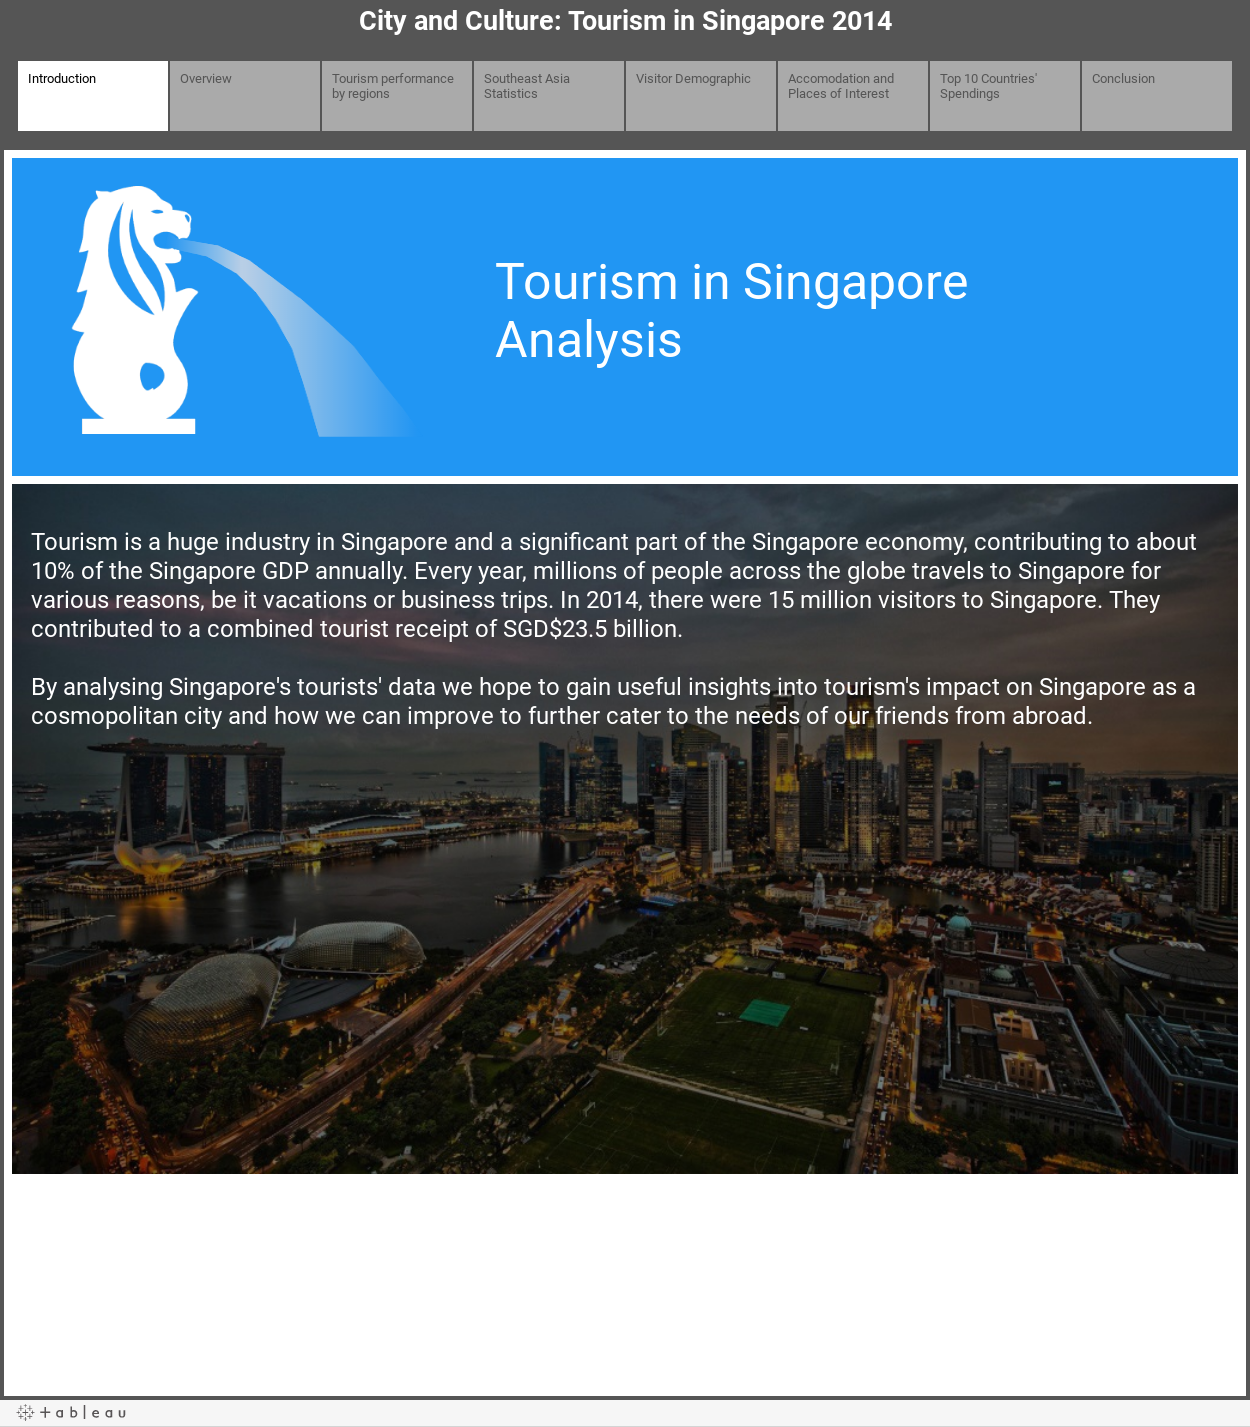 City and Culture: Tourism in Singapore 2014